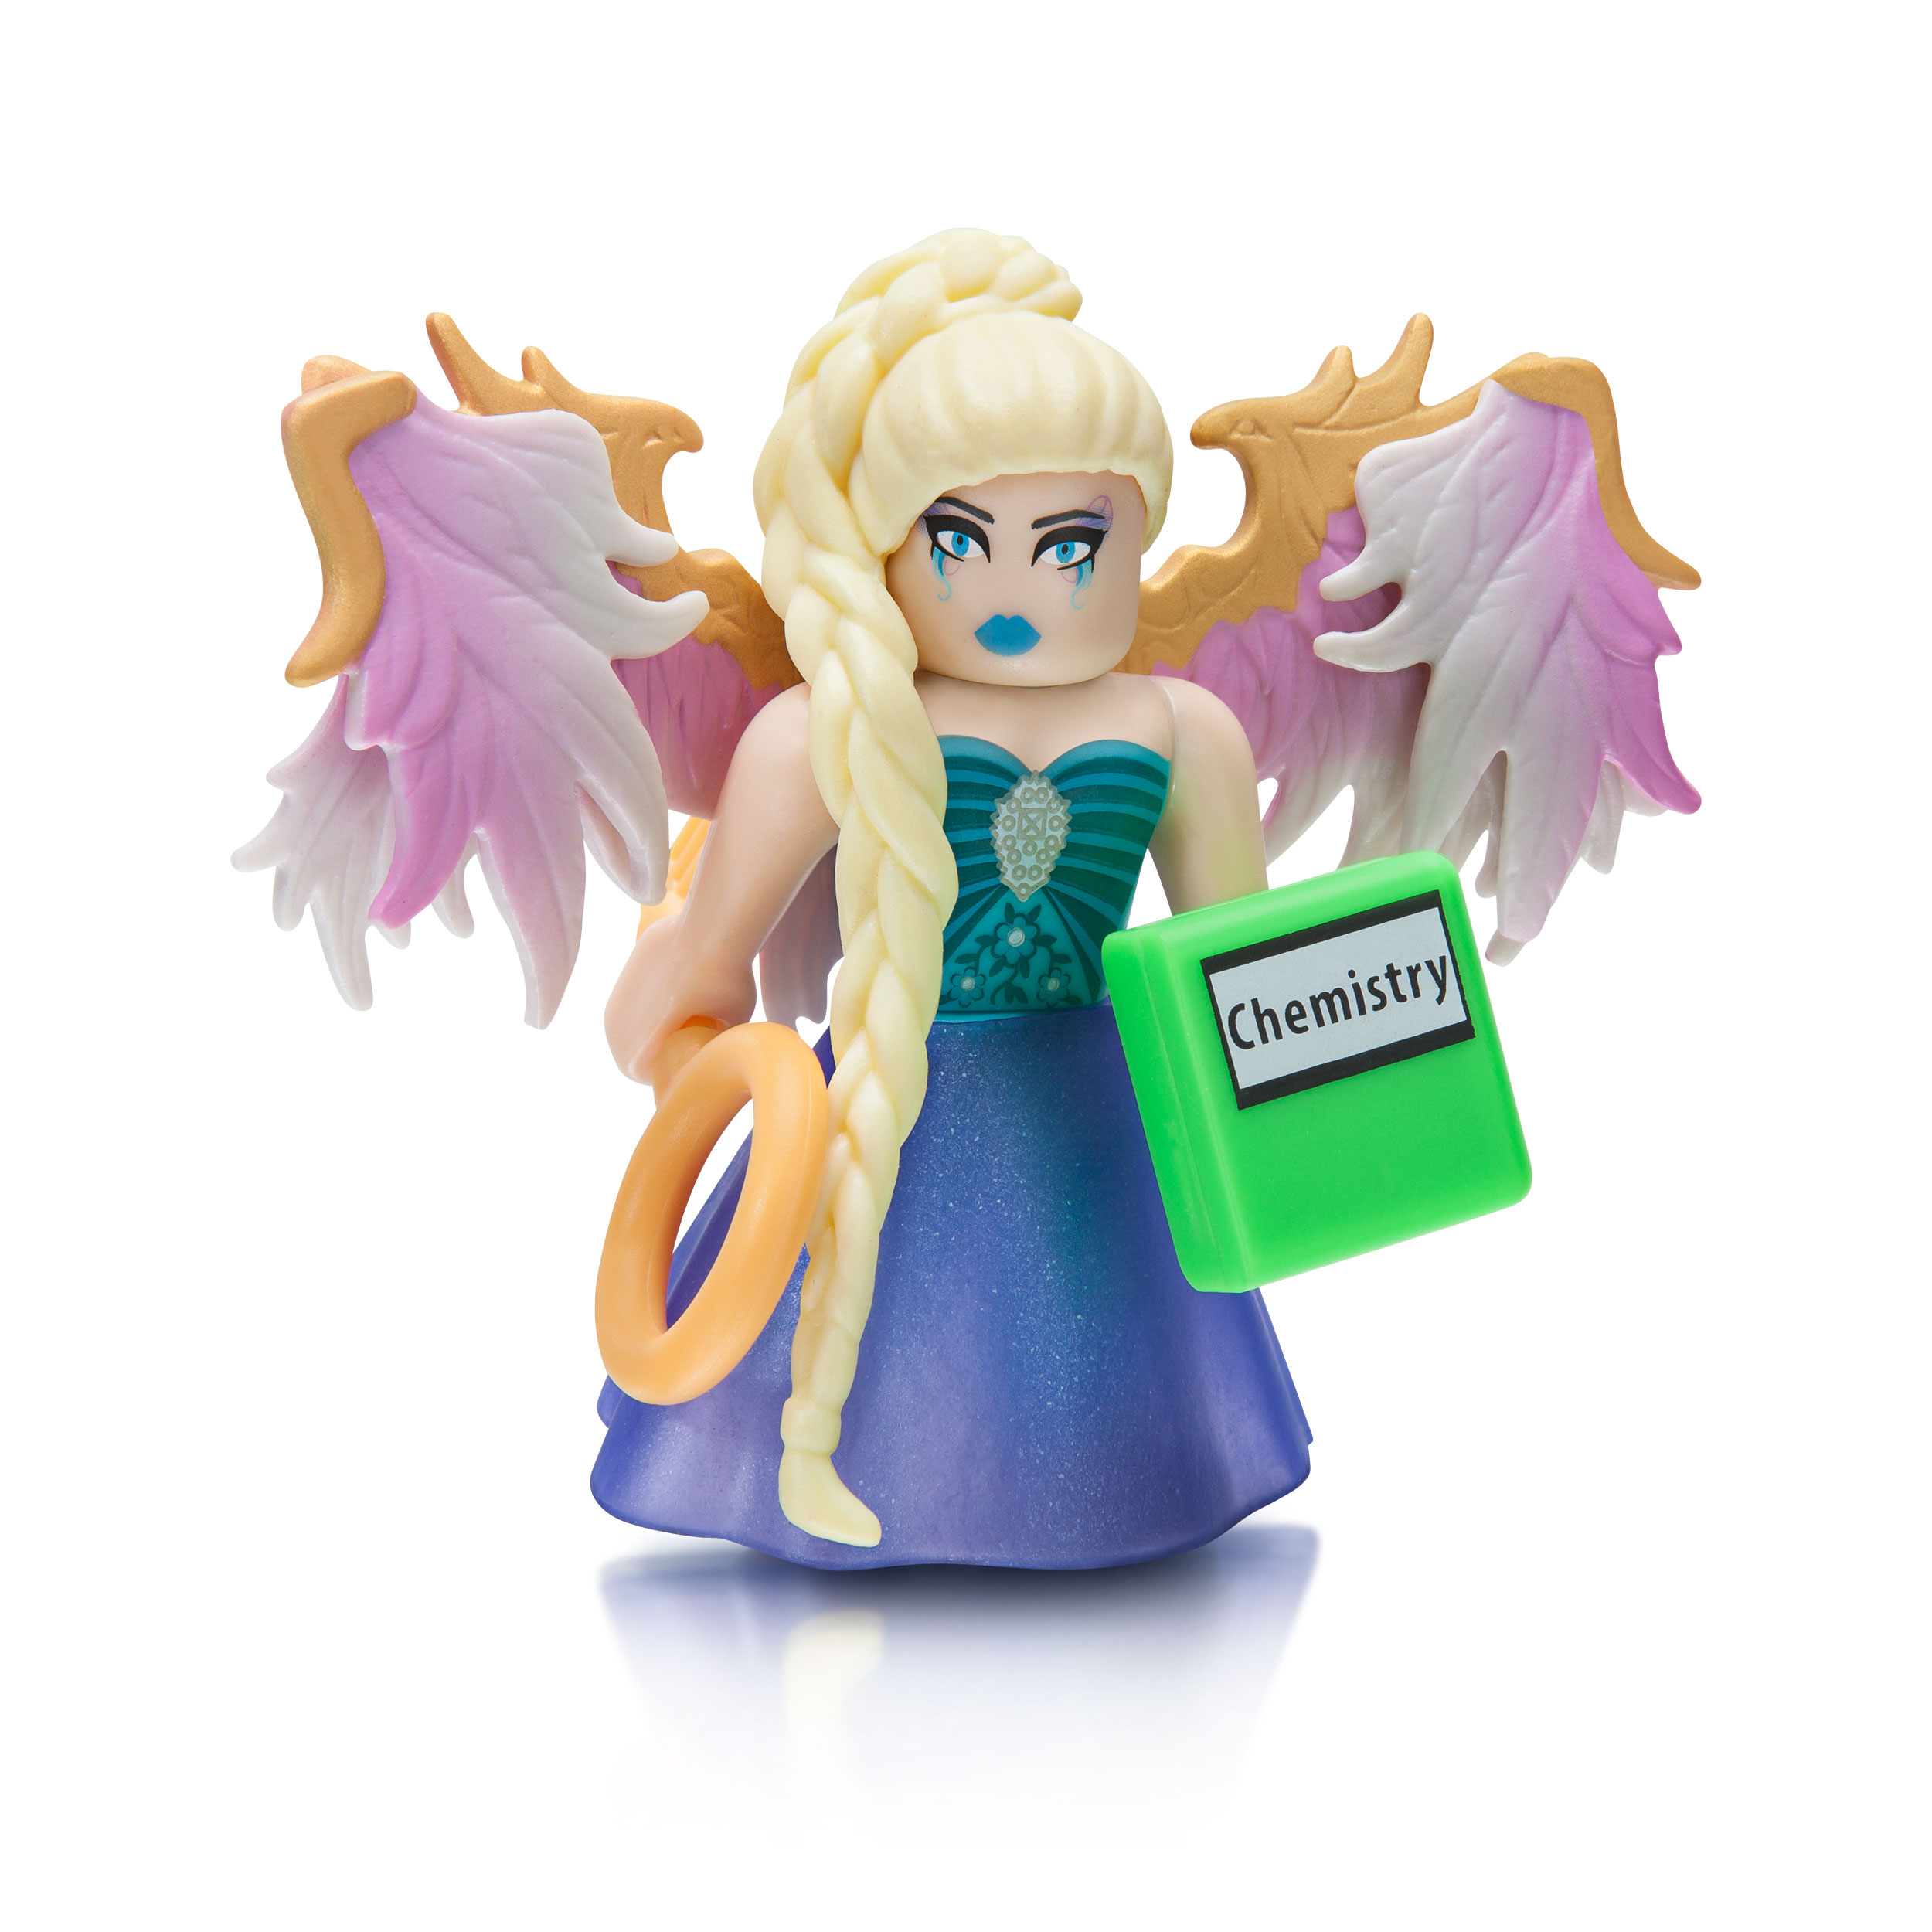 Roblox Celebrity Royale High School Enchantress Figure Pack